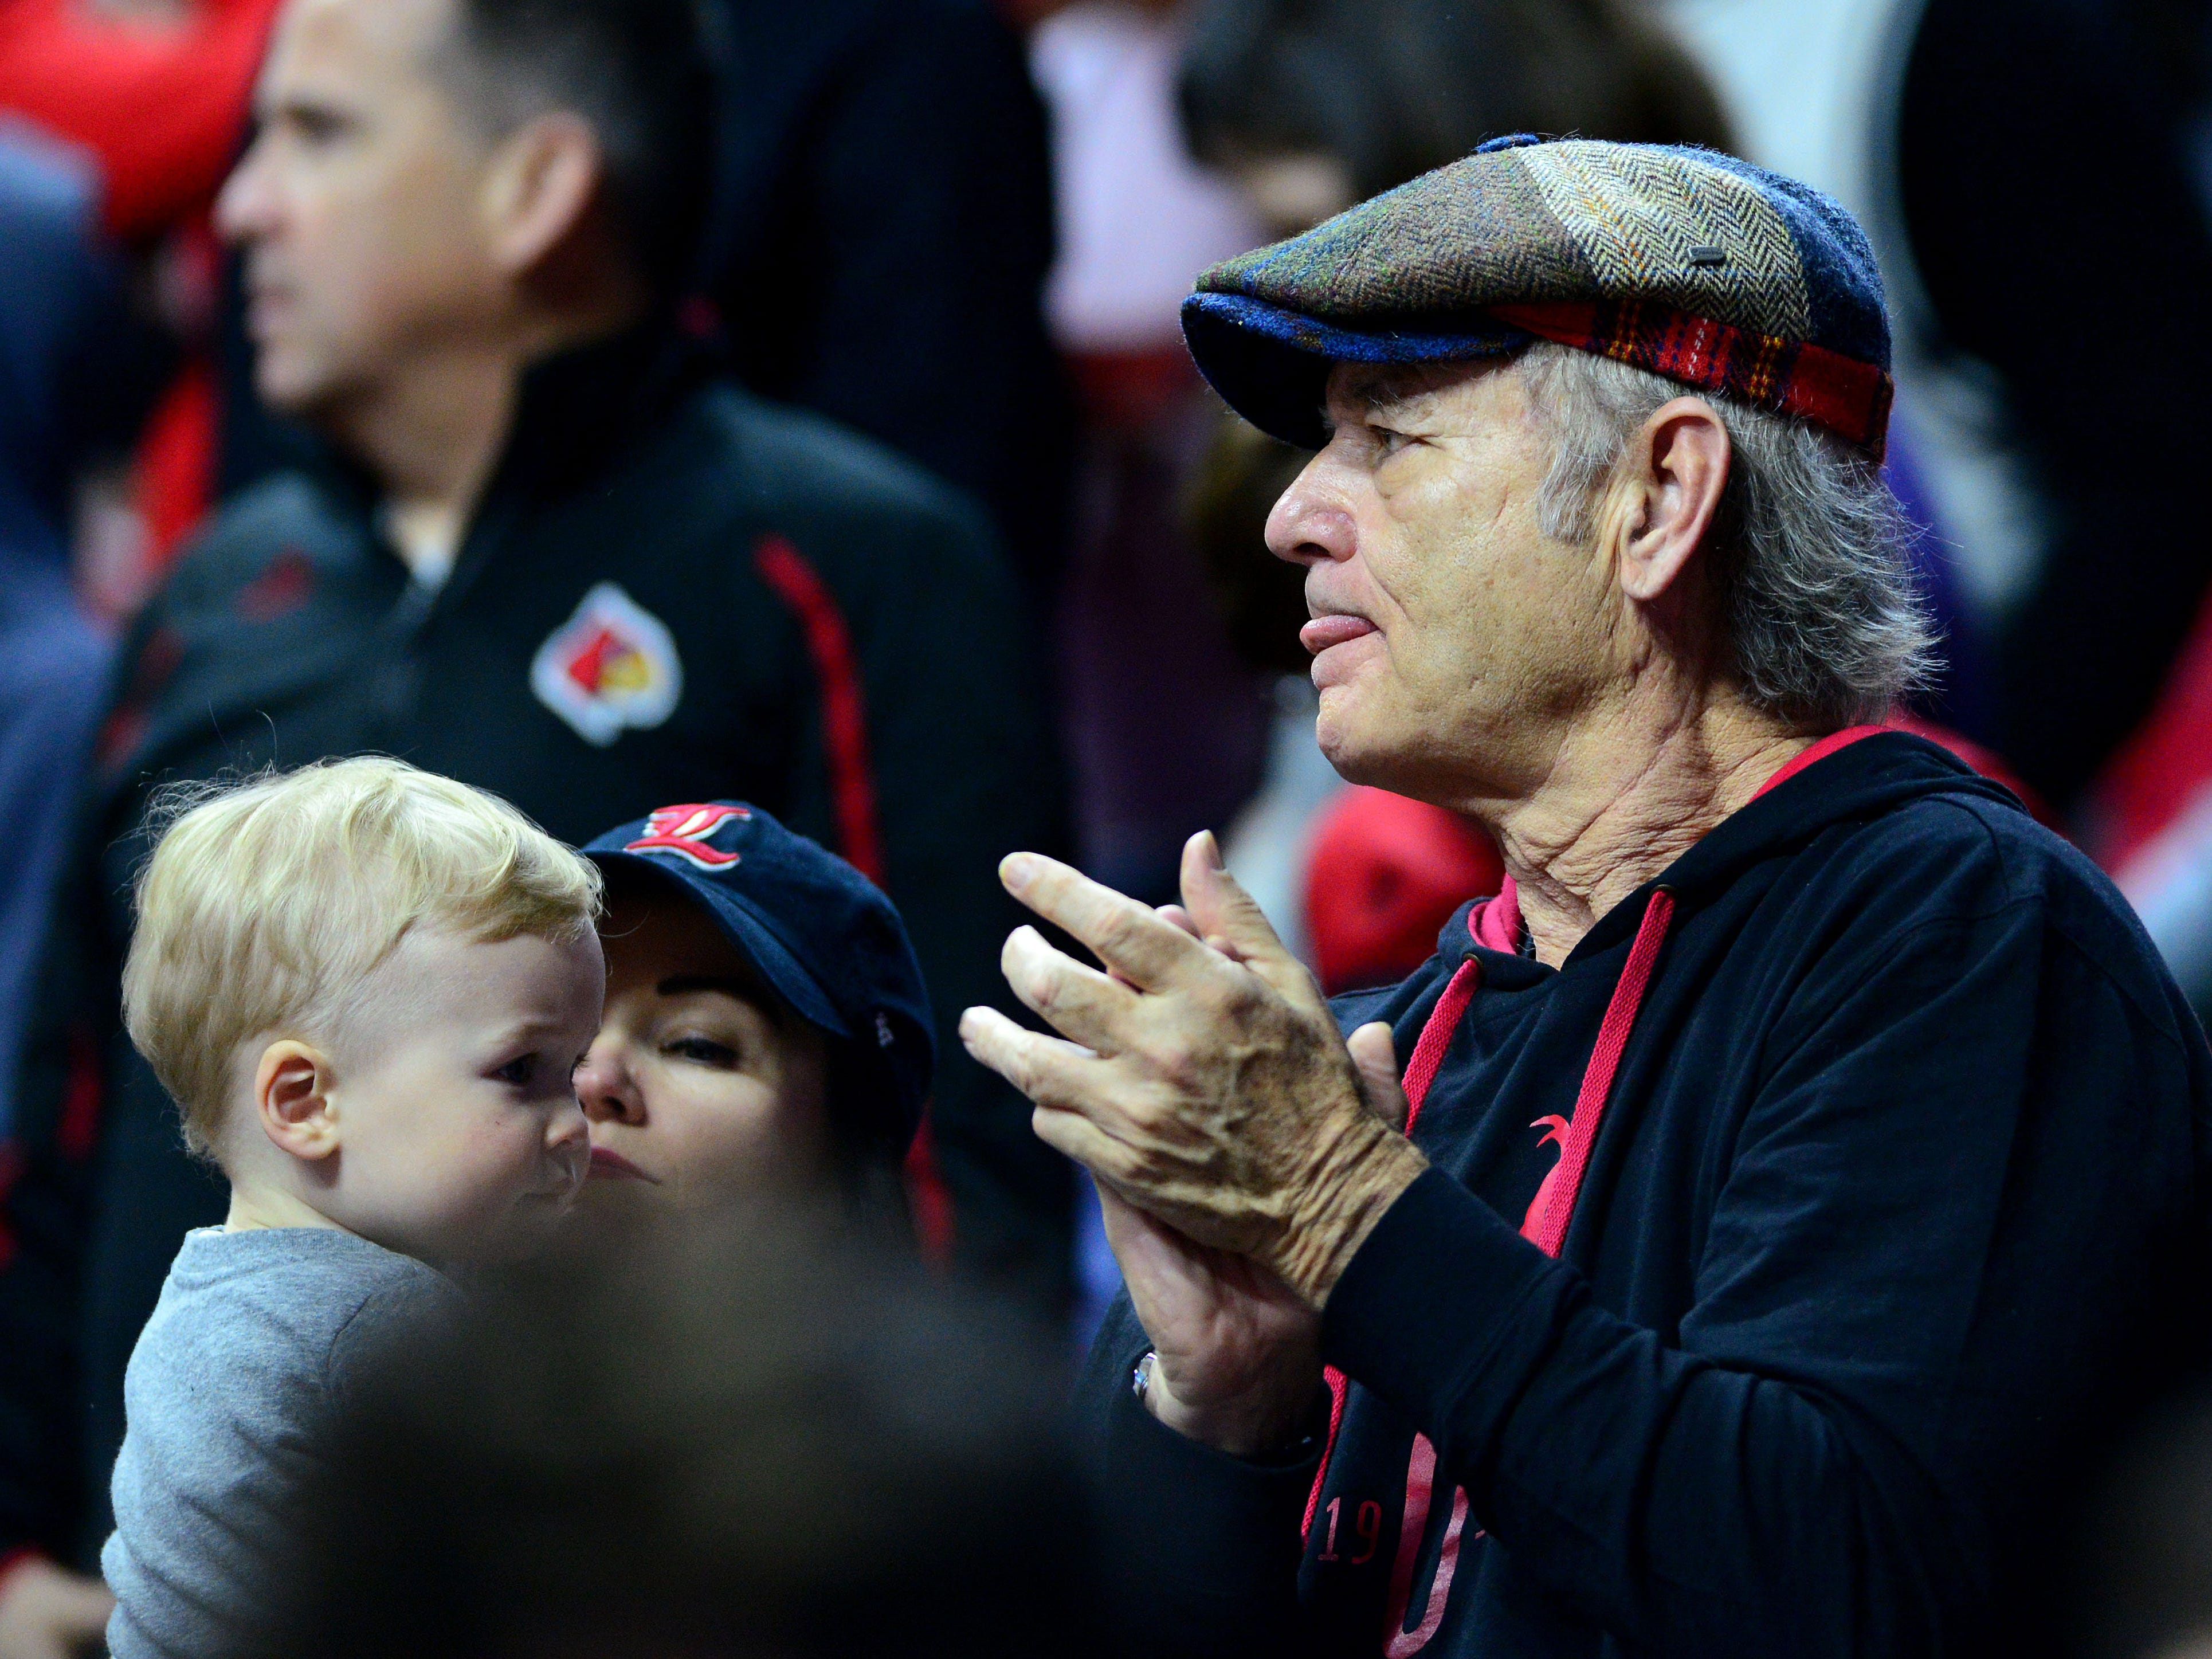 Actor Bill Murray watches the game between the Minnesota Golden Gophers and the Louisville Cardinals in the first round of the 2019 NCAA Tournament at Wells Fargo Arena. Murray's son, Luke, is an assistant coach for Louisville.